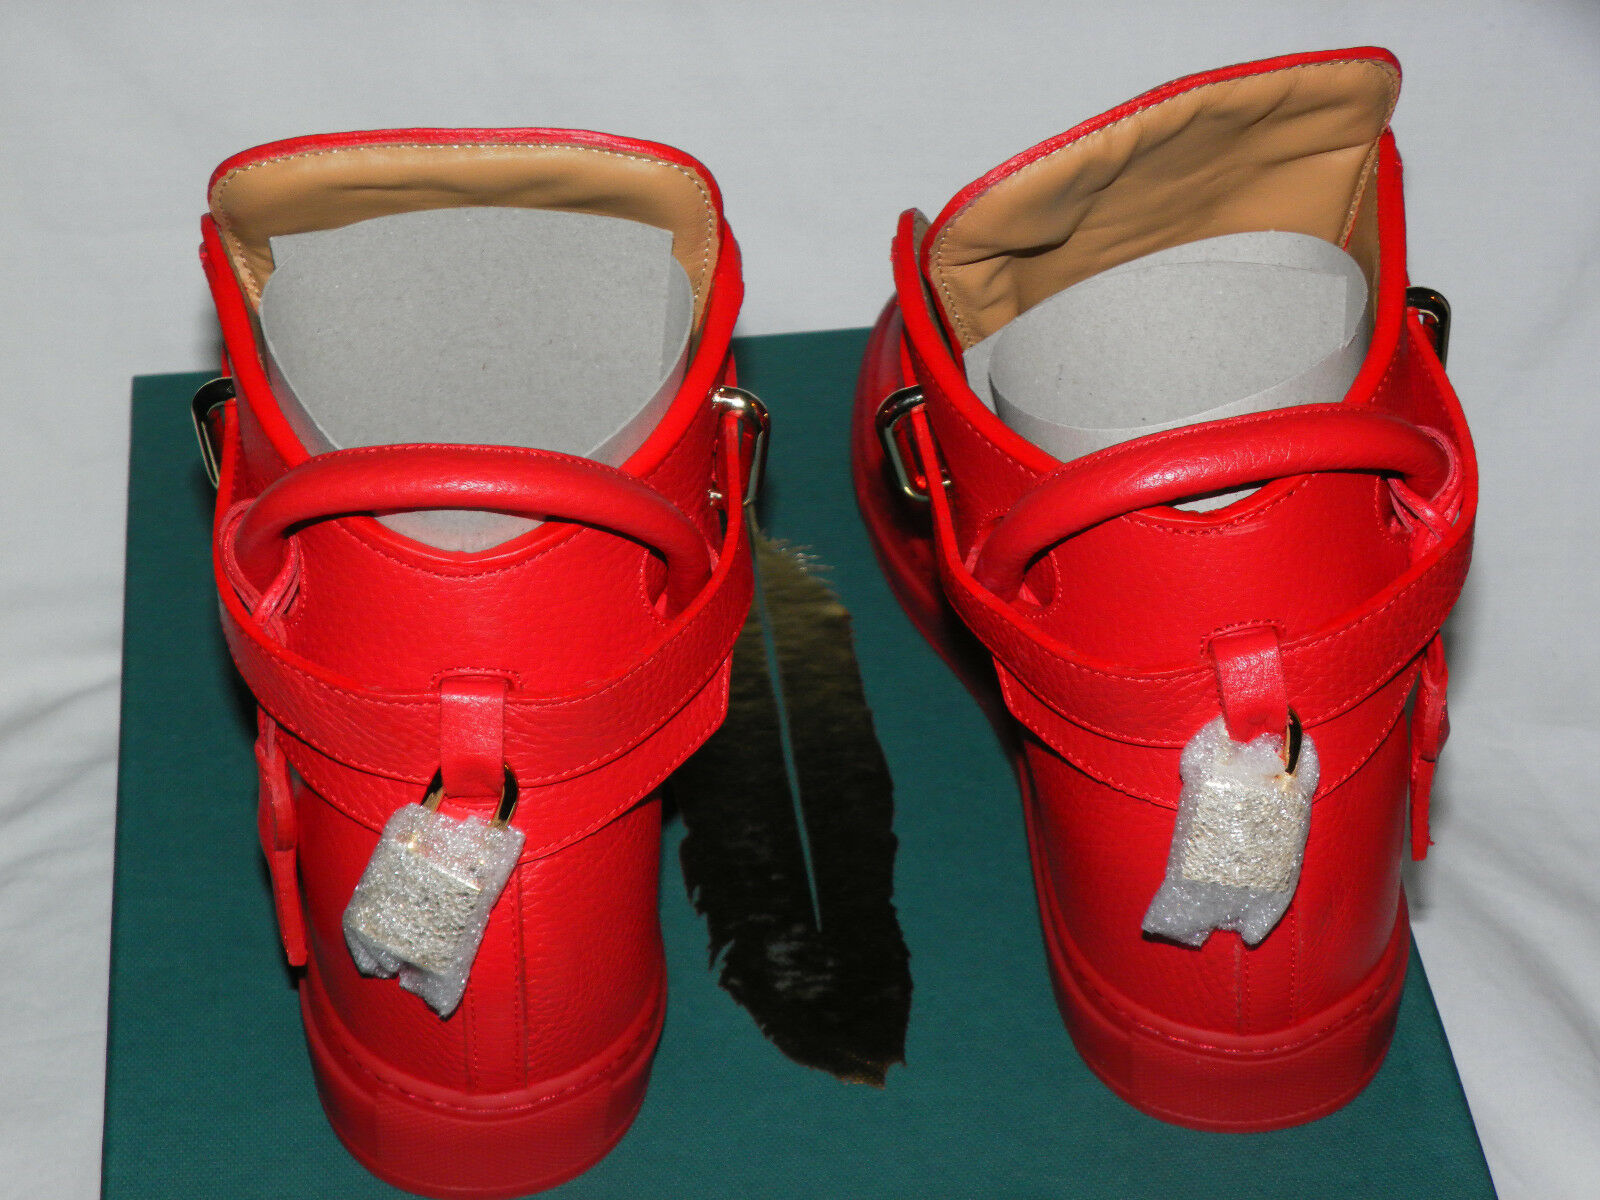 BUSCEMI 100MM ALTA RED RED RED LEATHER WOMEN'S HIGH-TOP WEDGE SNEAKERS Sz. 38IT 8US 2fd818